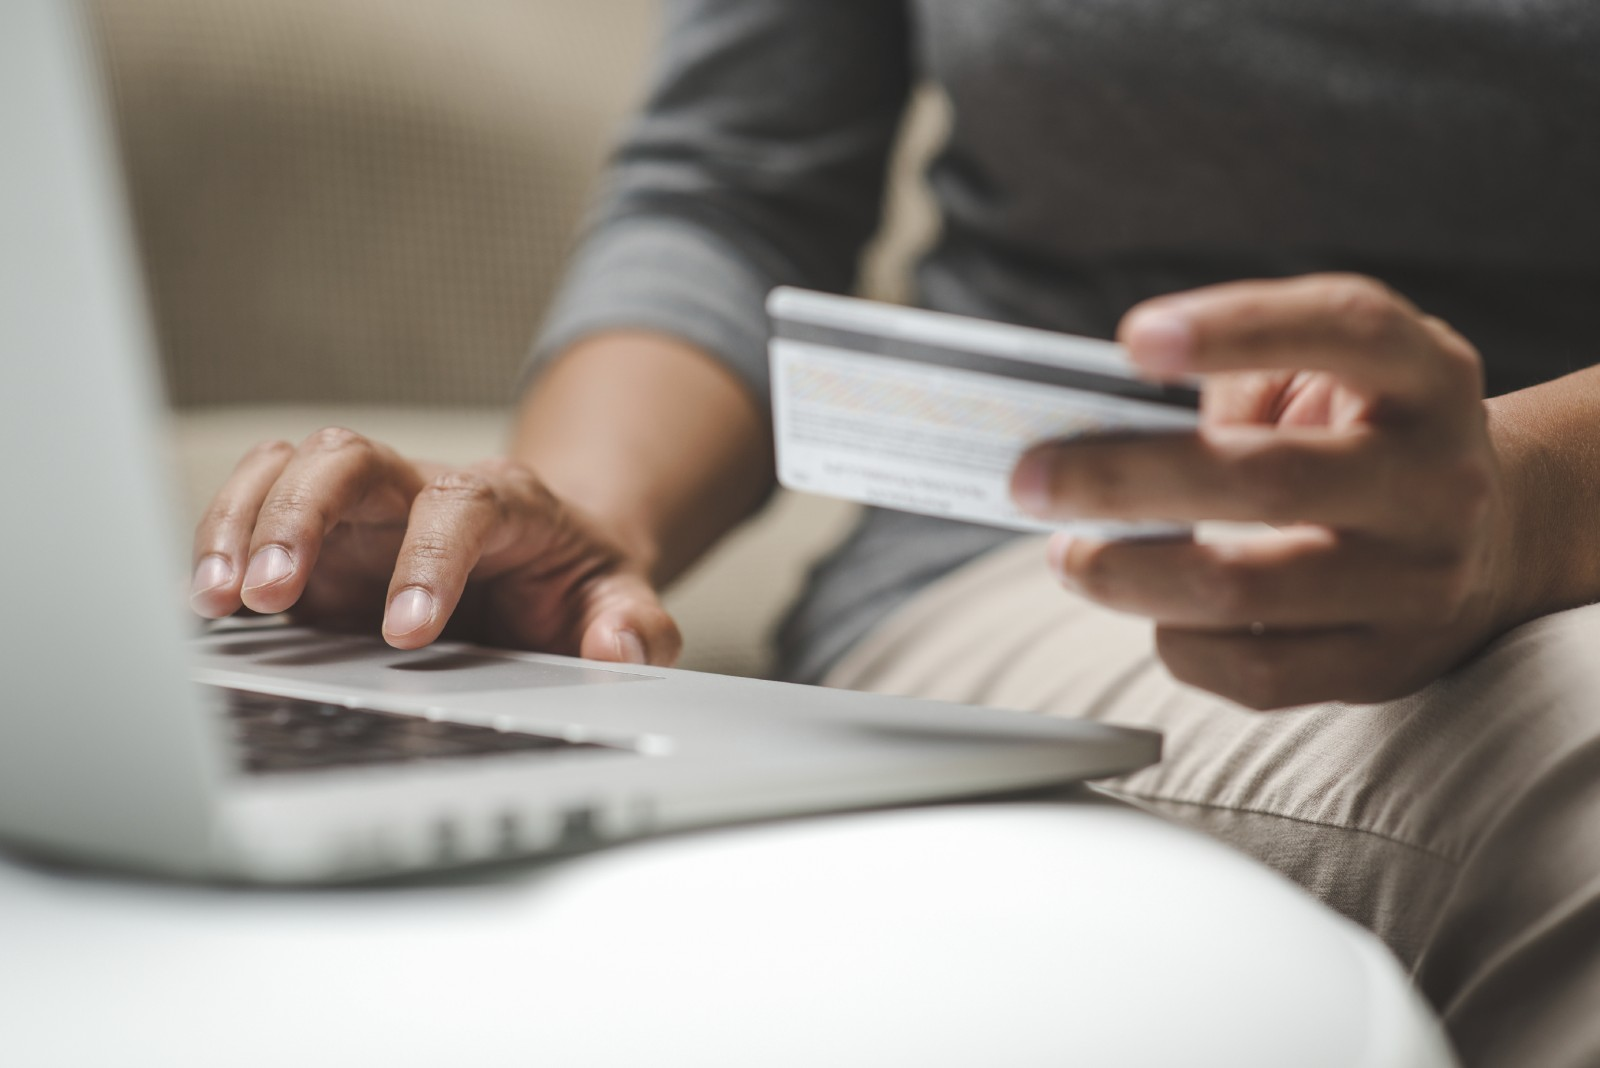 3 Secrets for Better Cross-Selling and Upselling Online